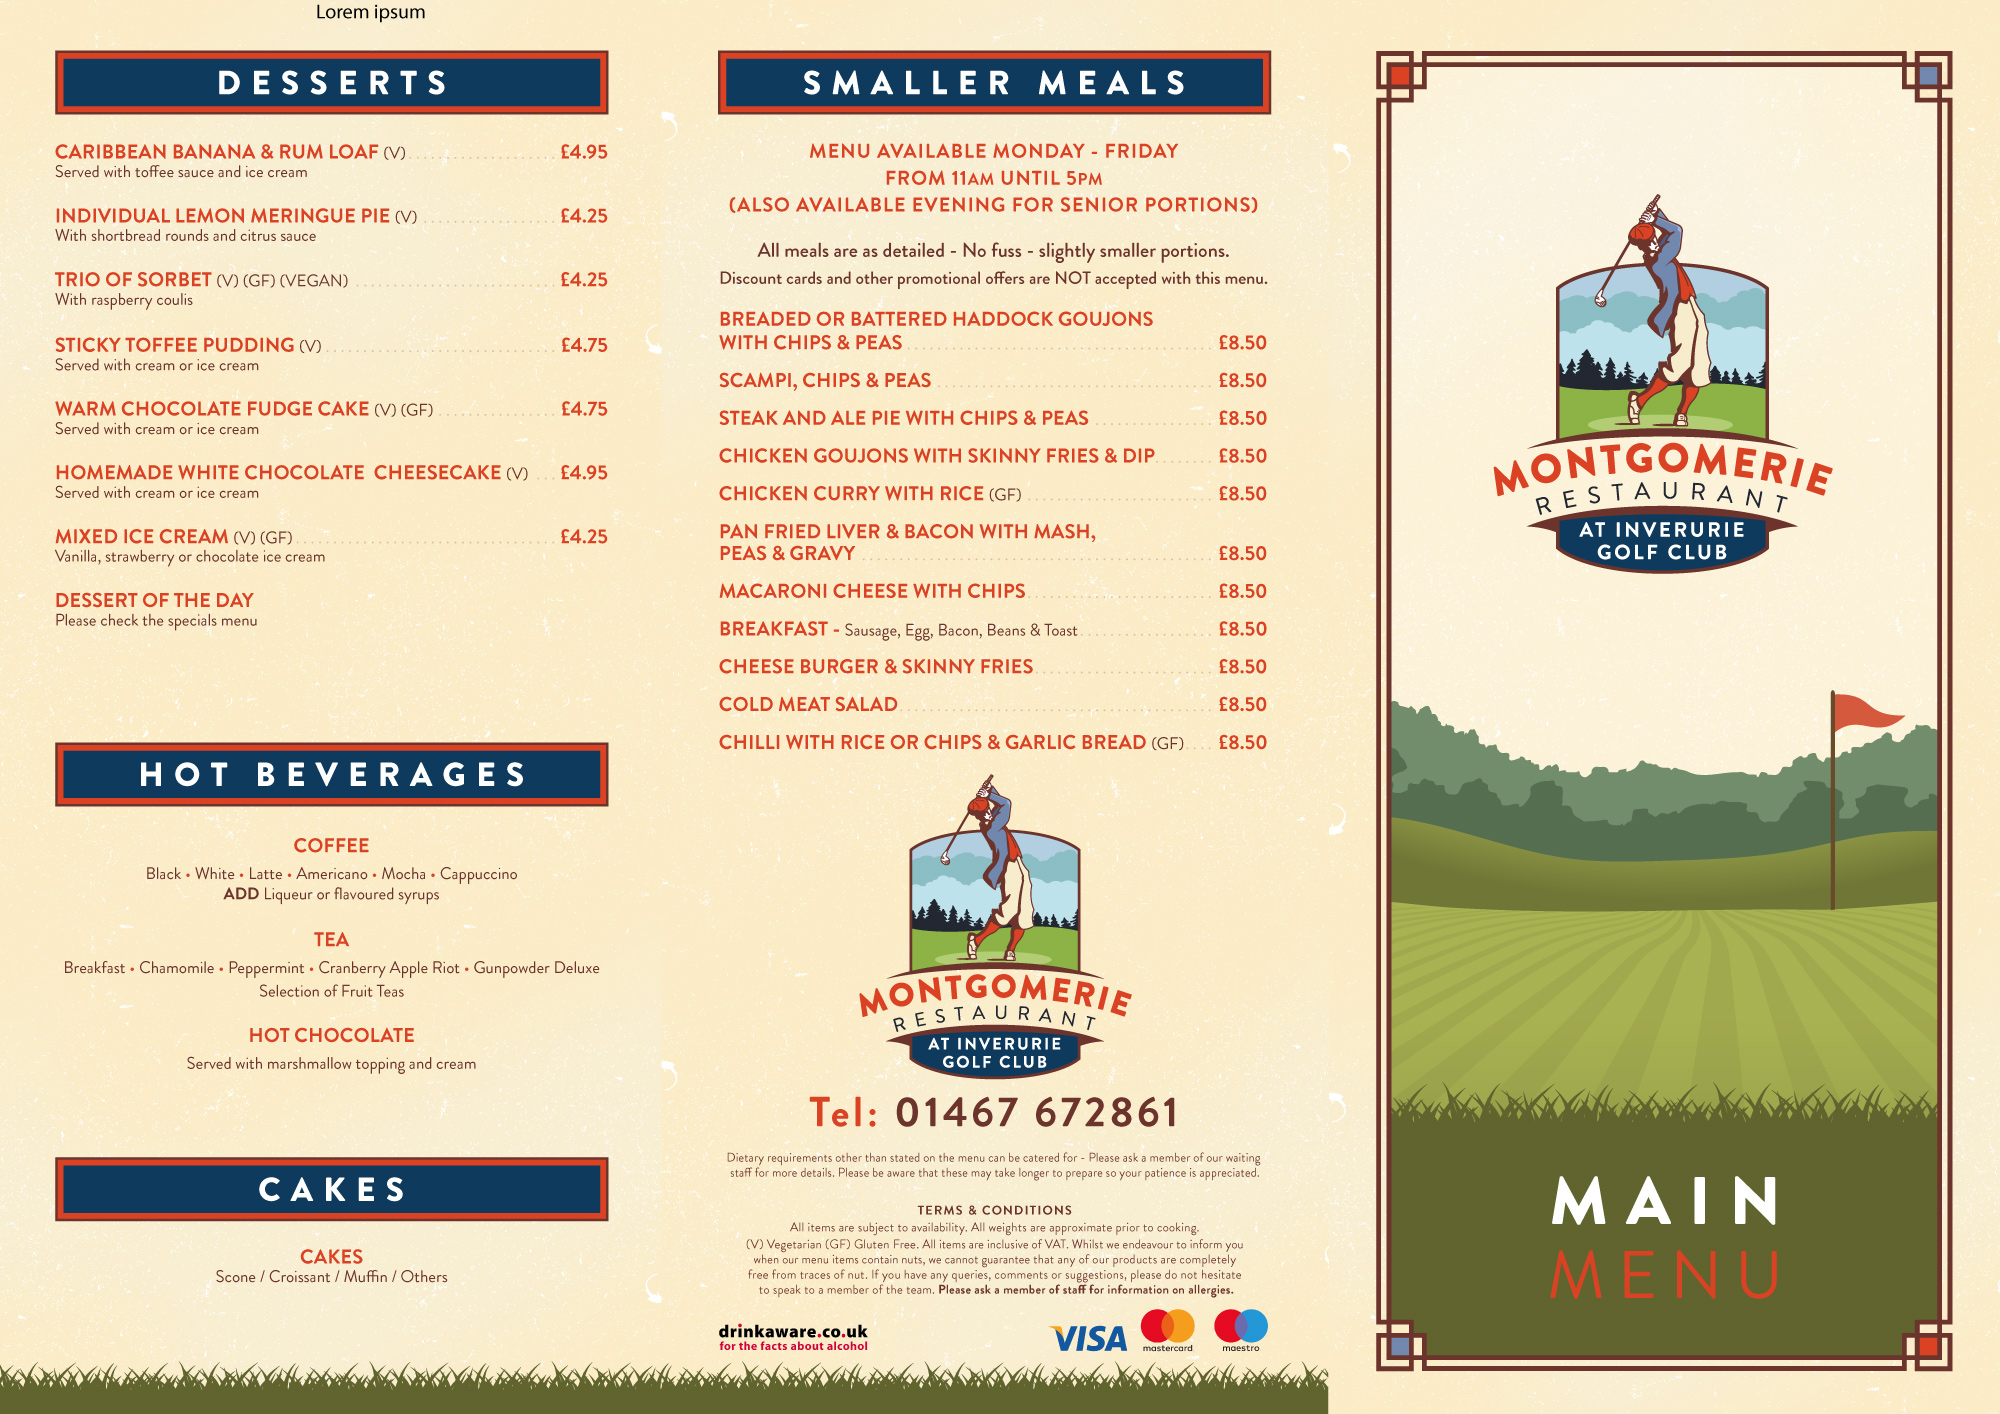 Montgomerie Main Menu 1 of 2